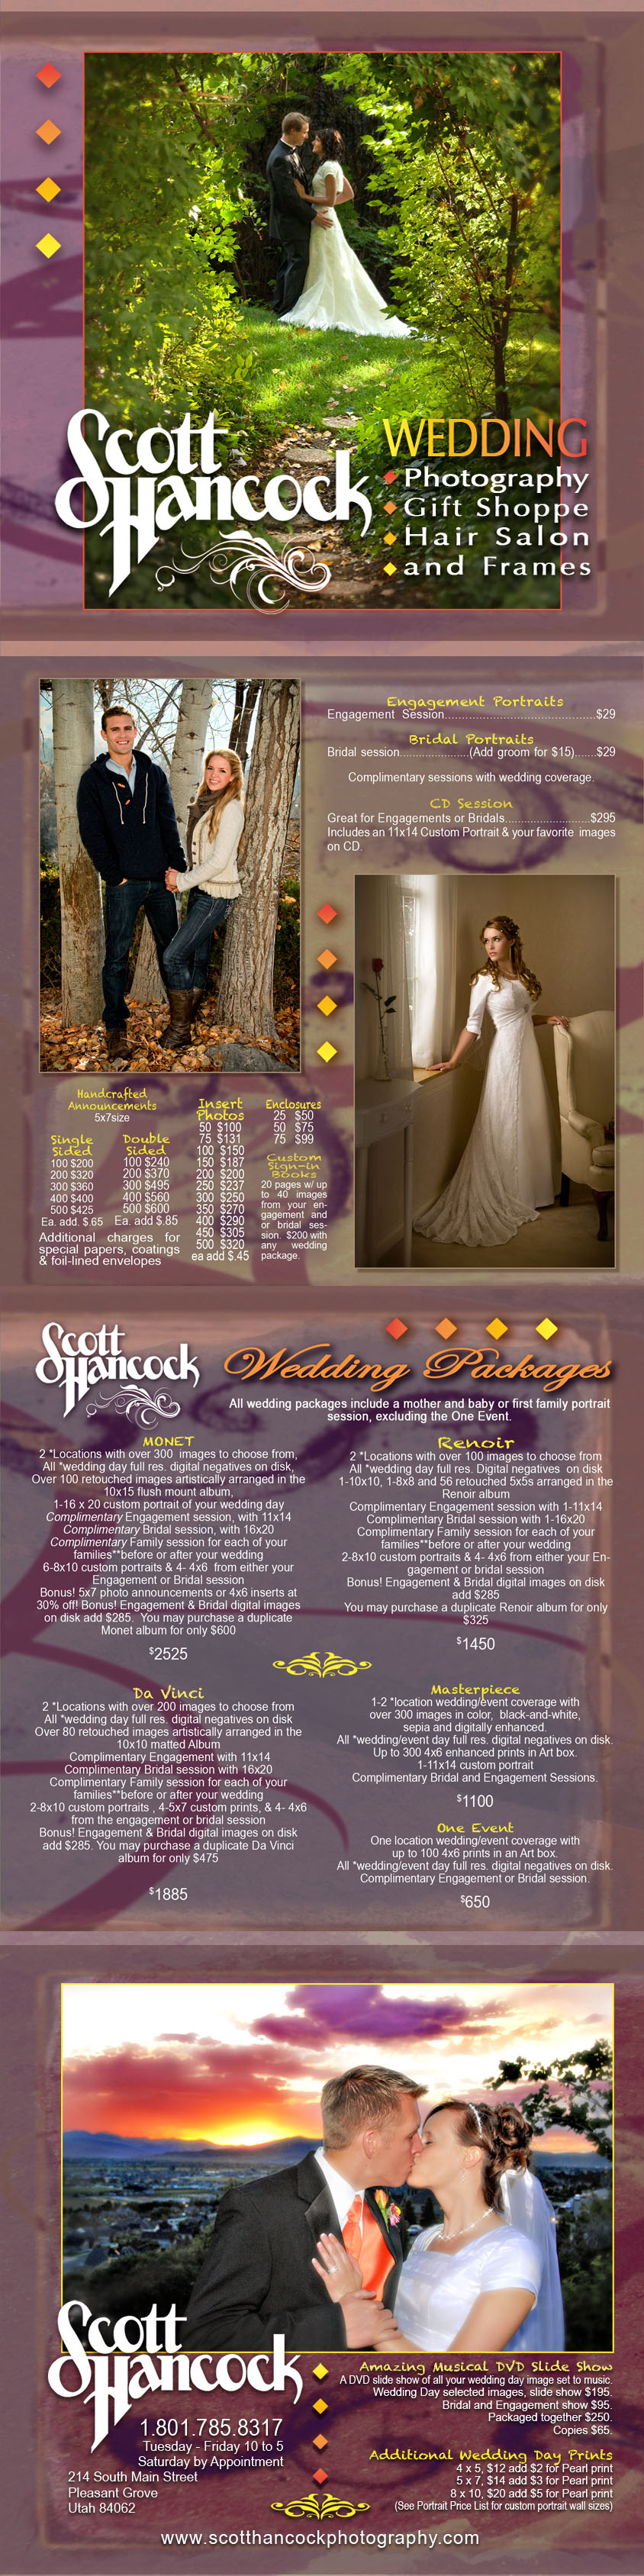 Pricelist higher wedding web prices1 Wedding Prices